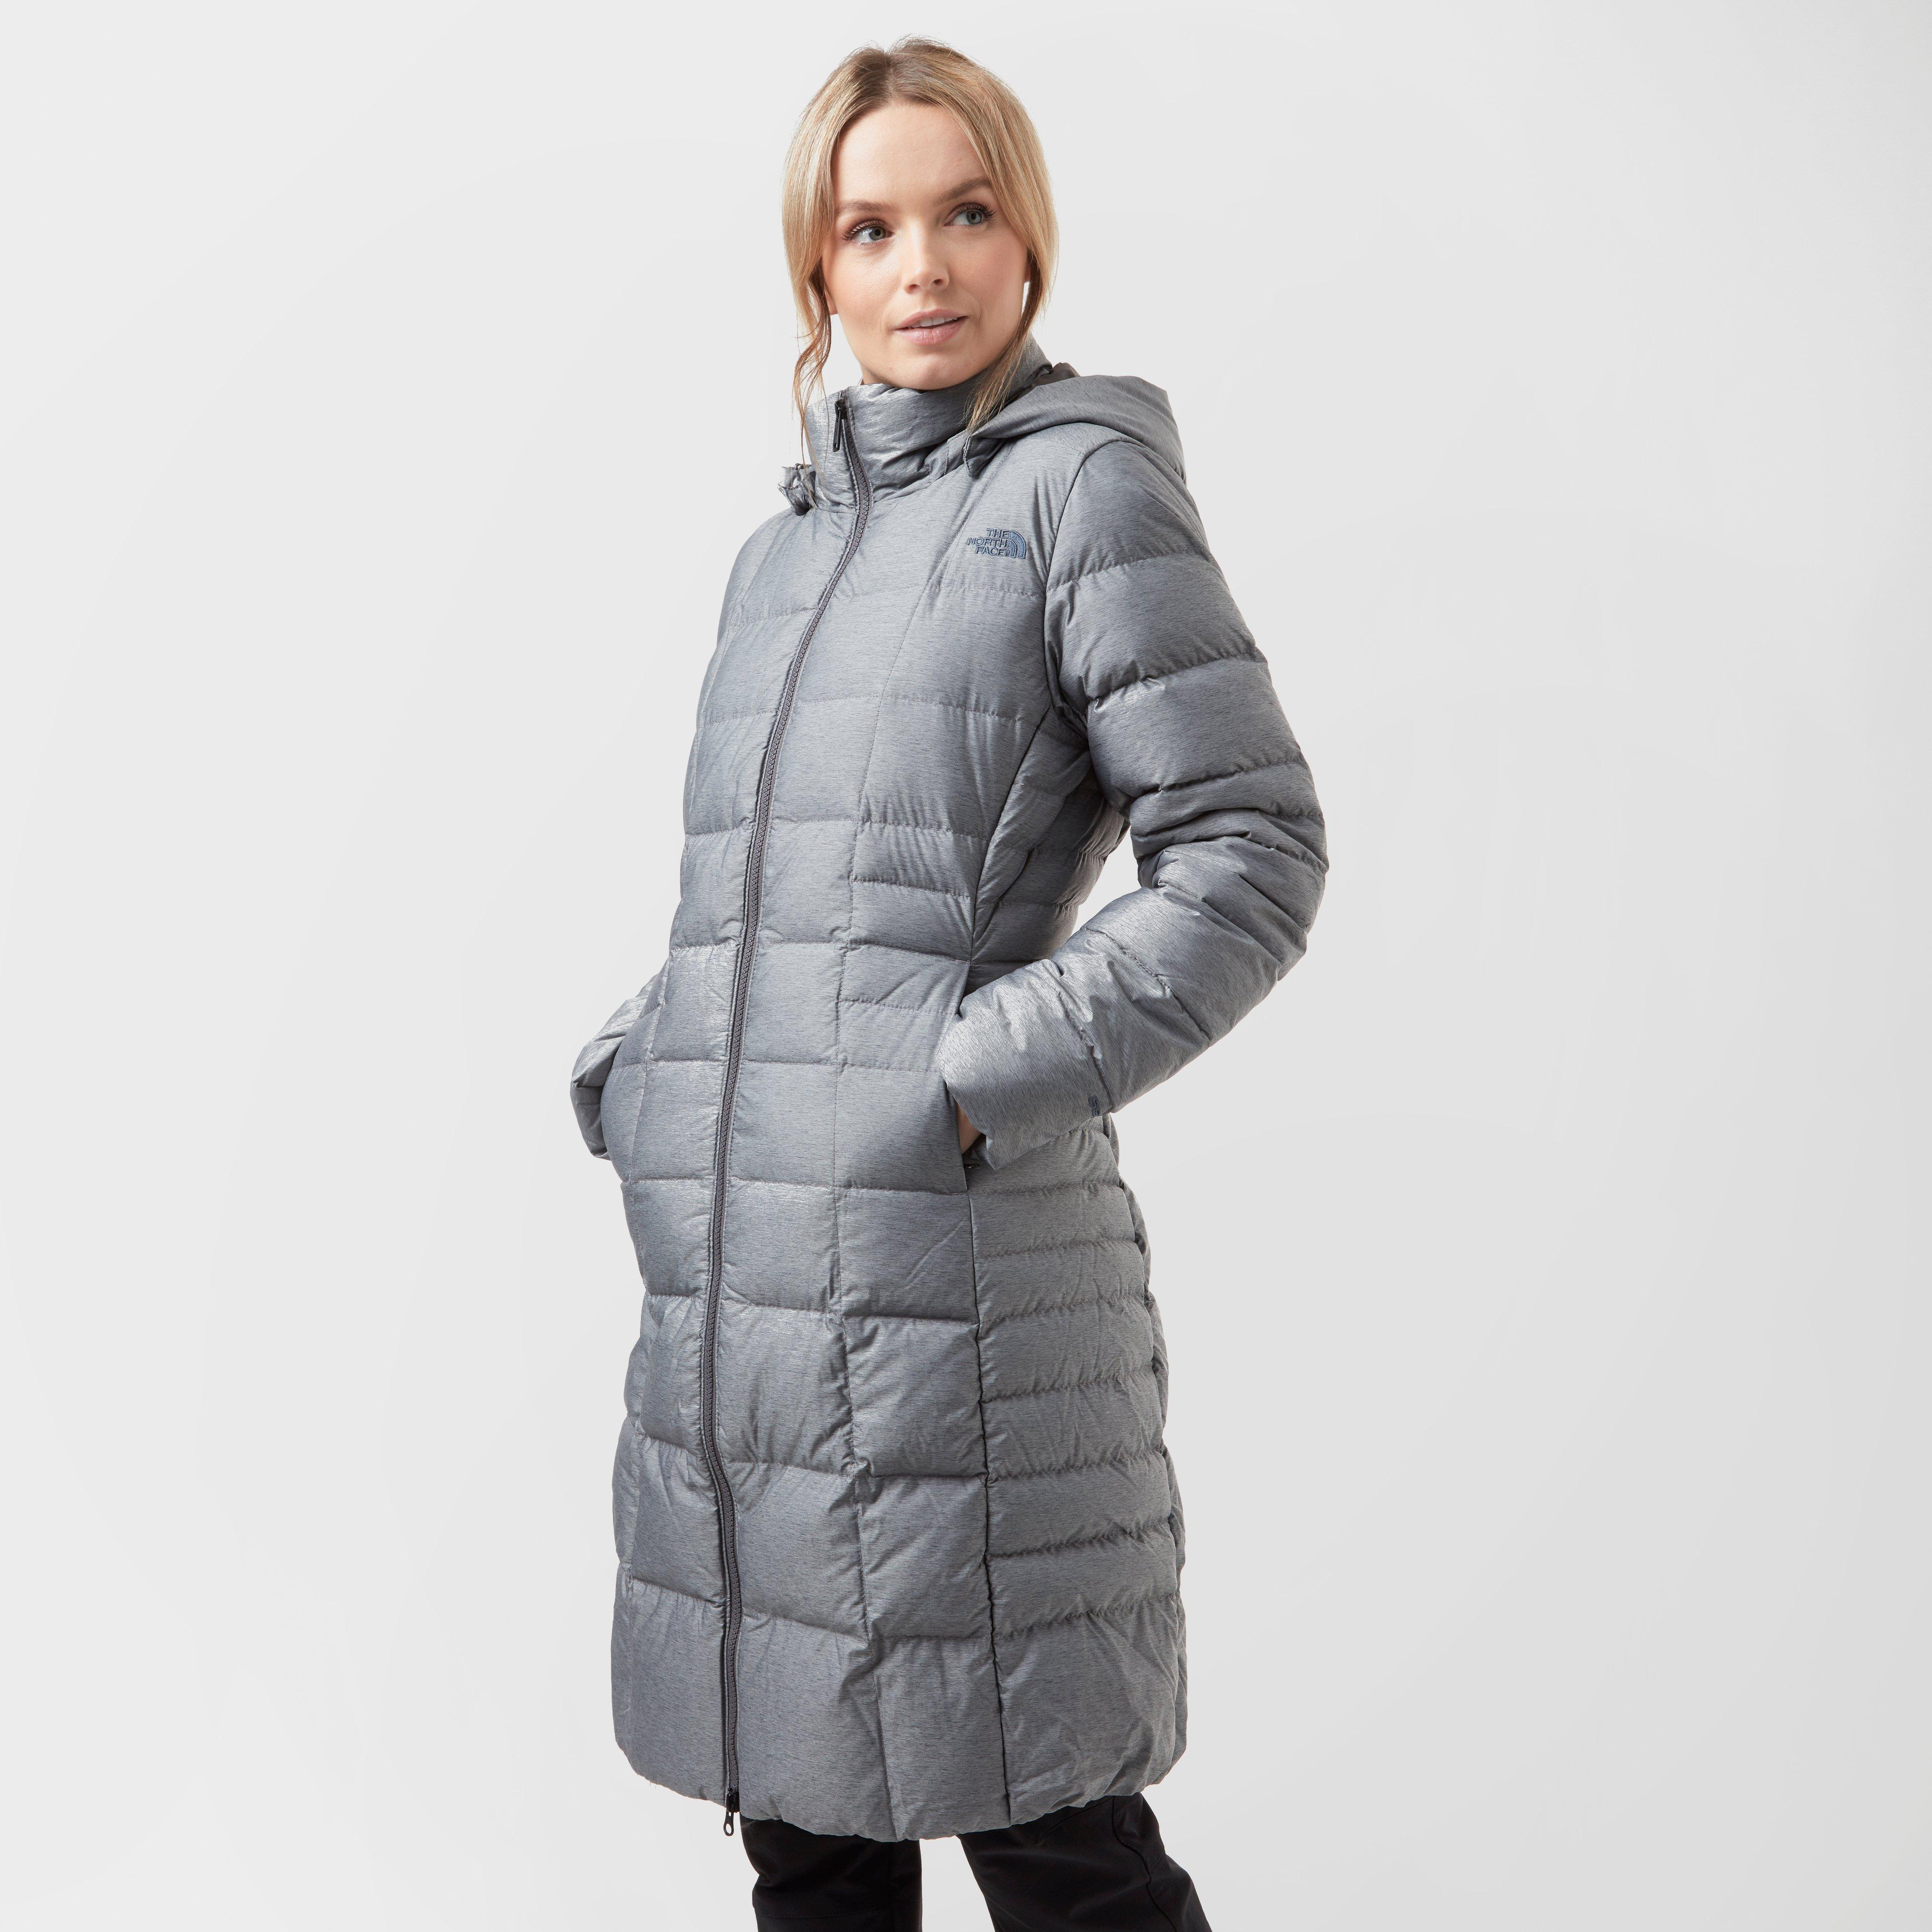 8b8b1e6f3 The North Face Metropolis Parka – Women's | Compare outdoor jacket ...